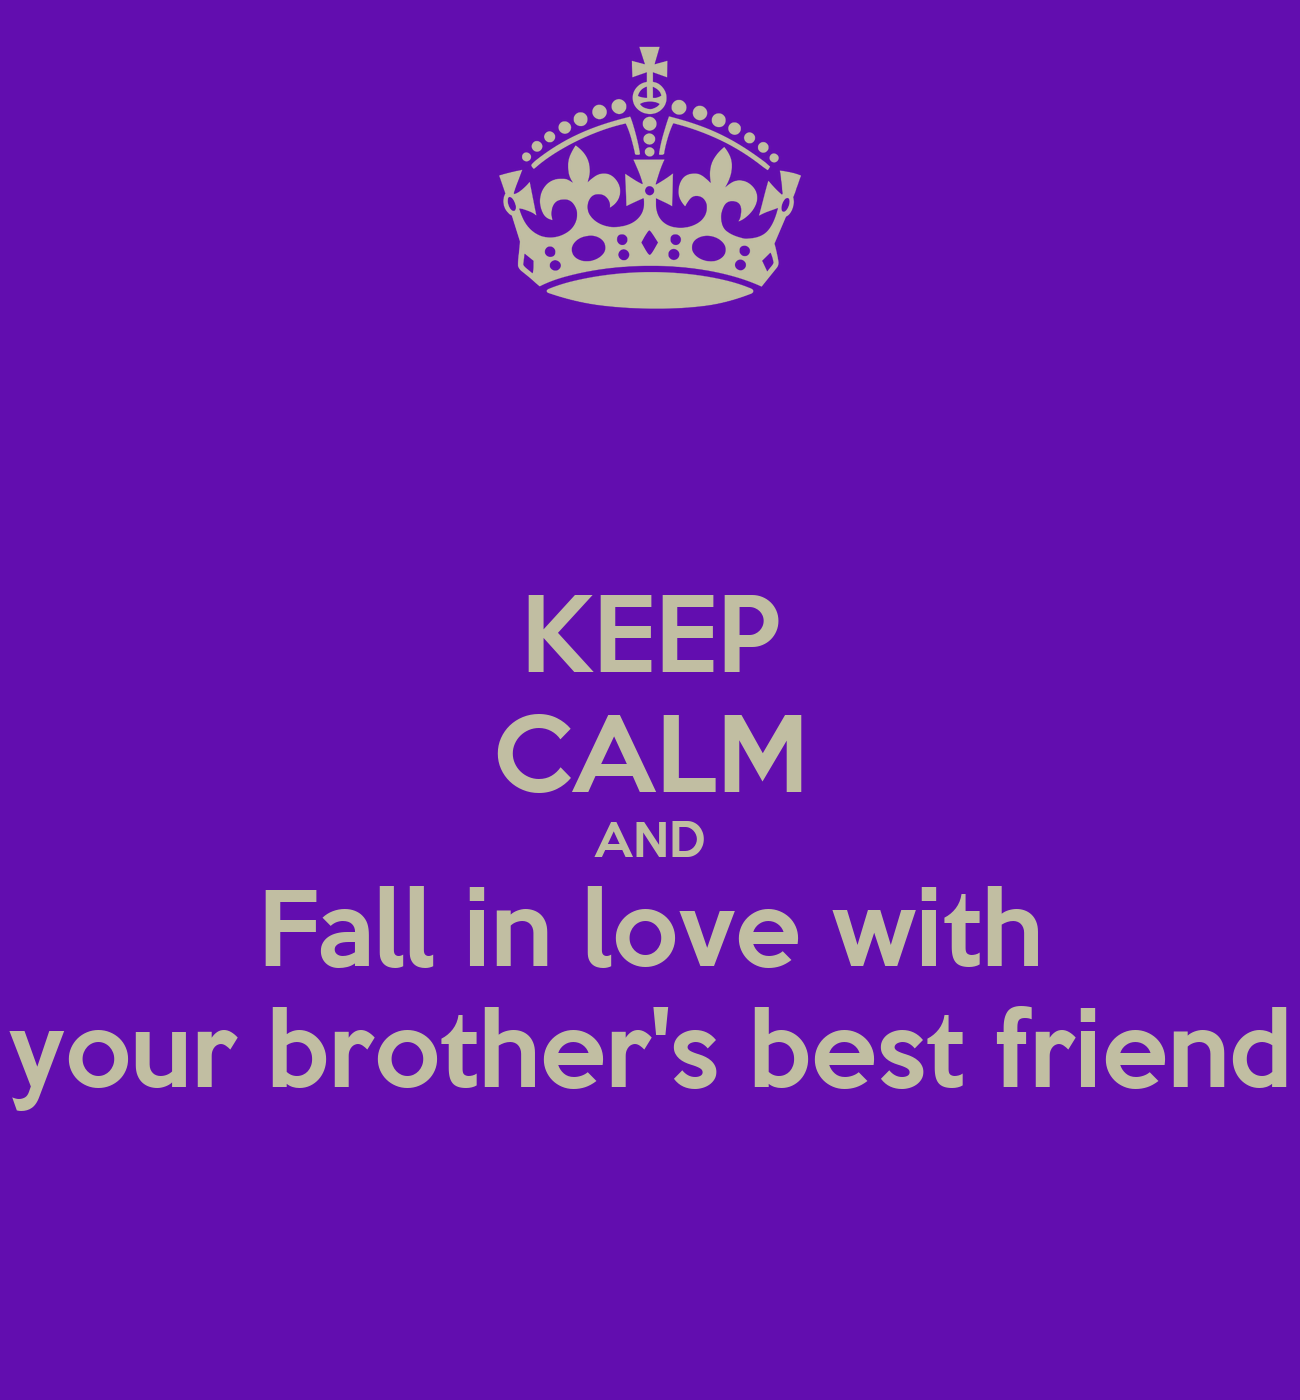 Falling For Your Best Friend Quotes: Falling For Your Friend Quotes. QuotesGram